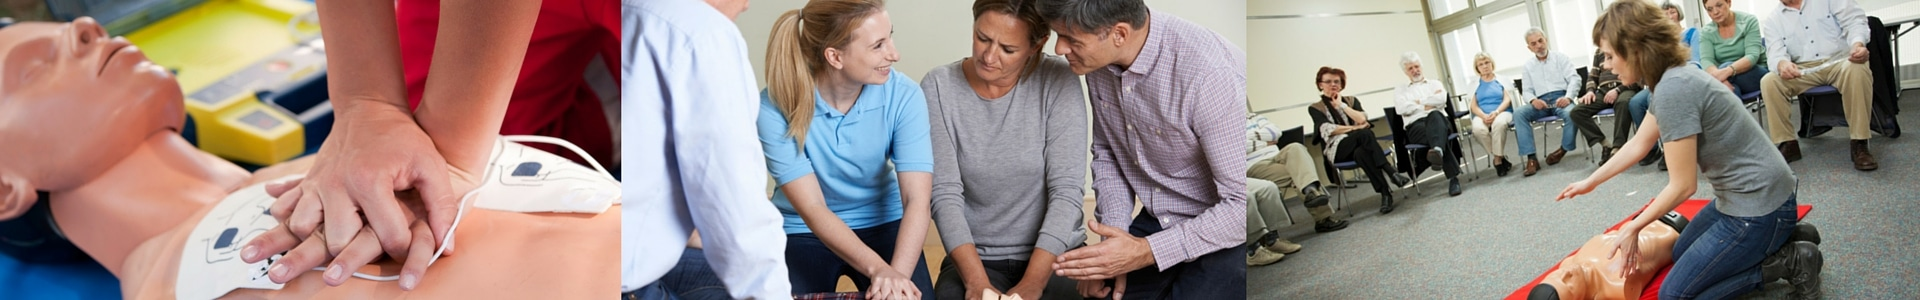 Cpr Courses Perth Cpr Certifications Rts Training Perth